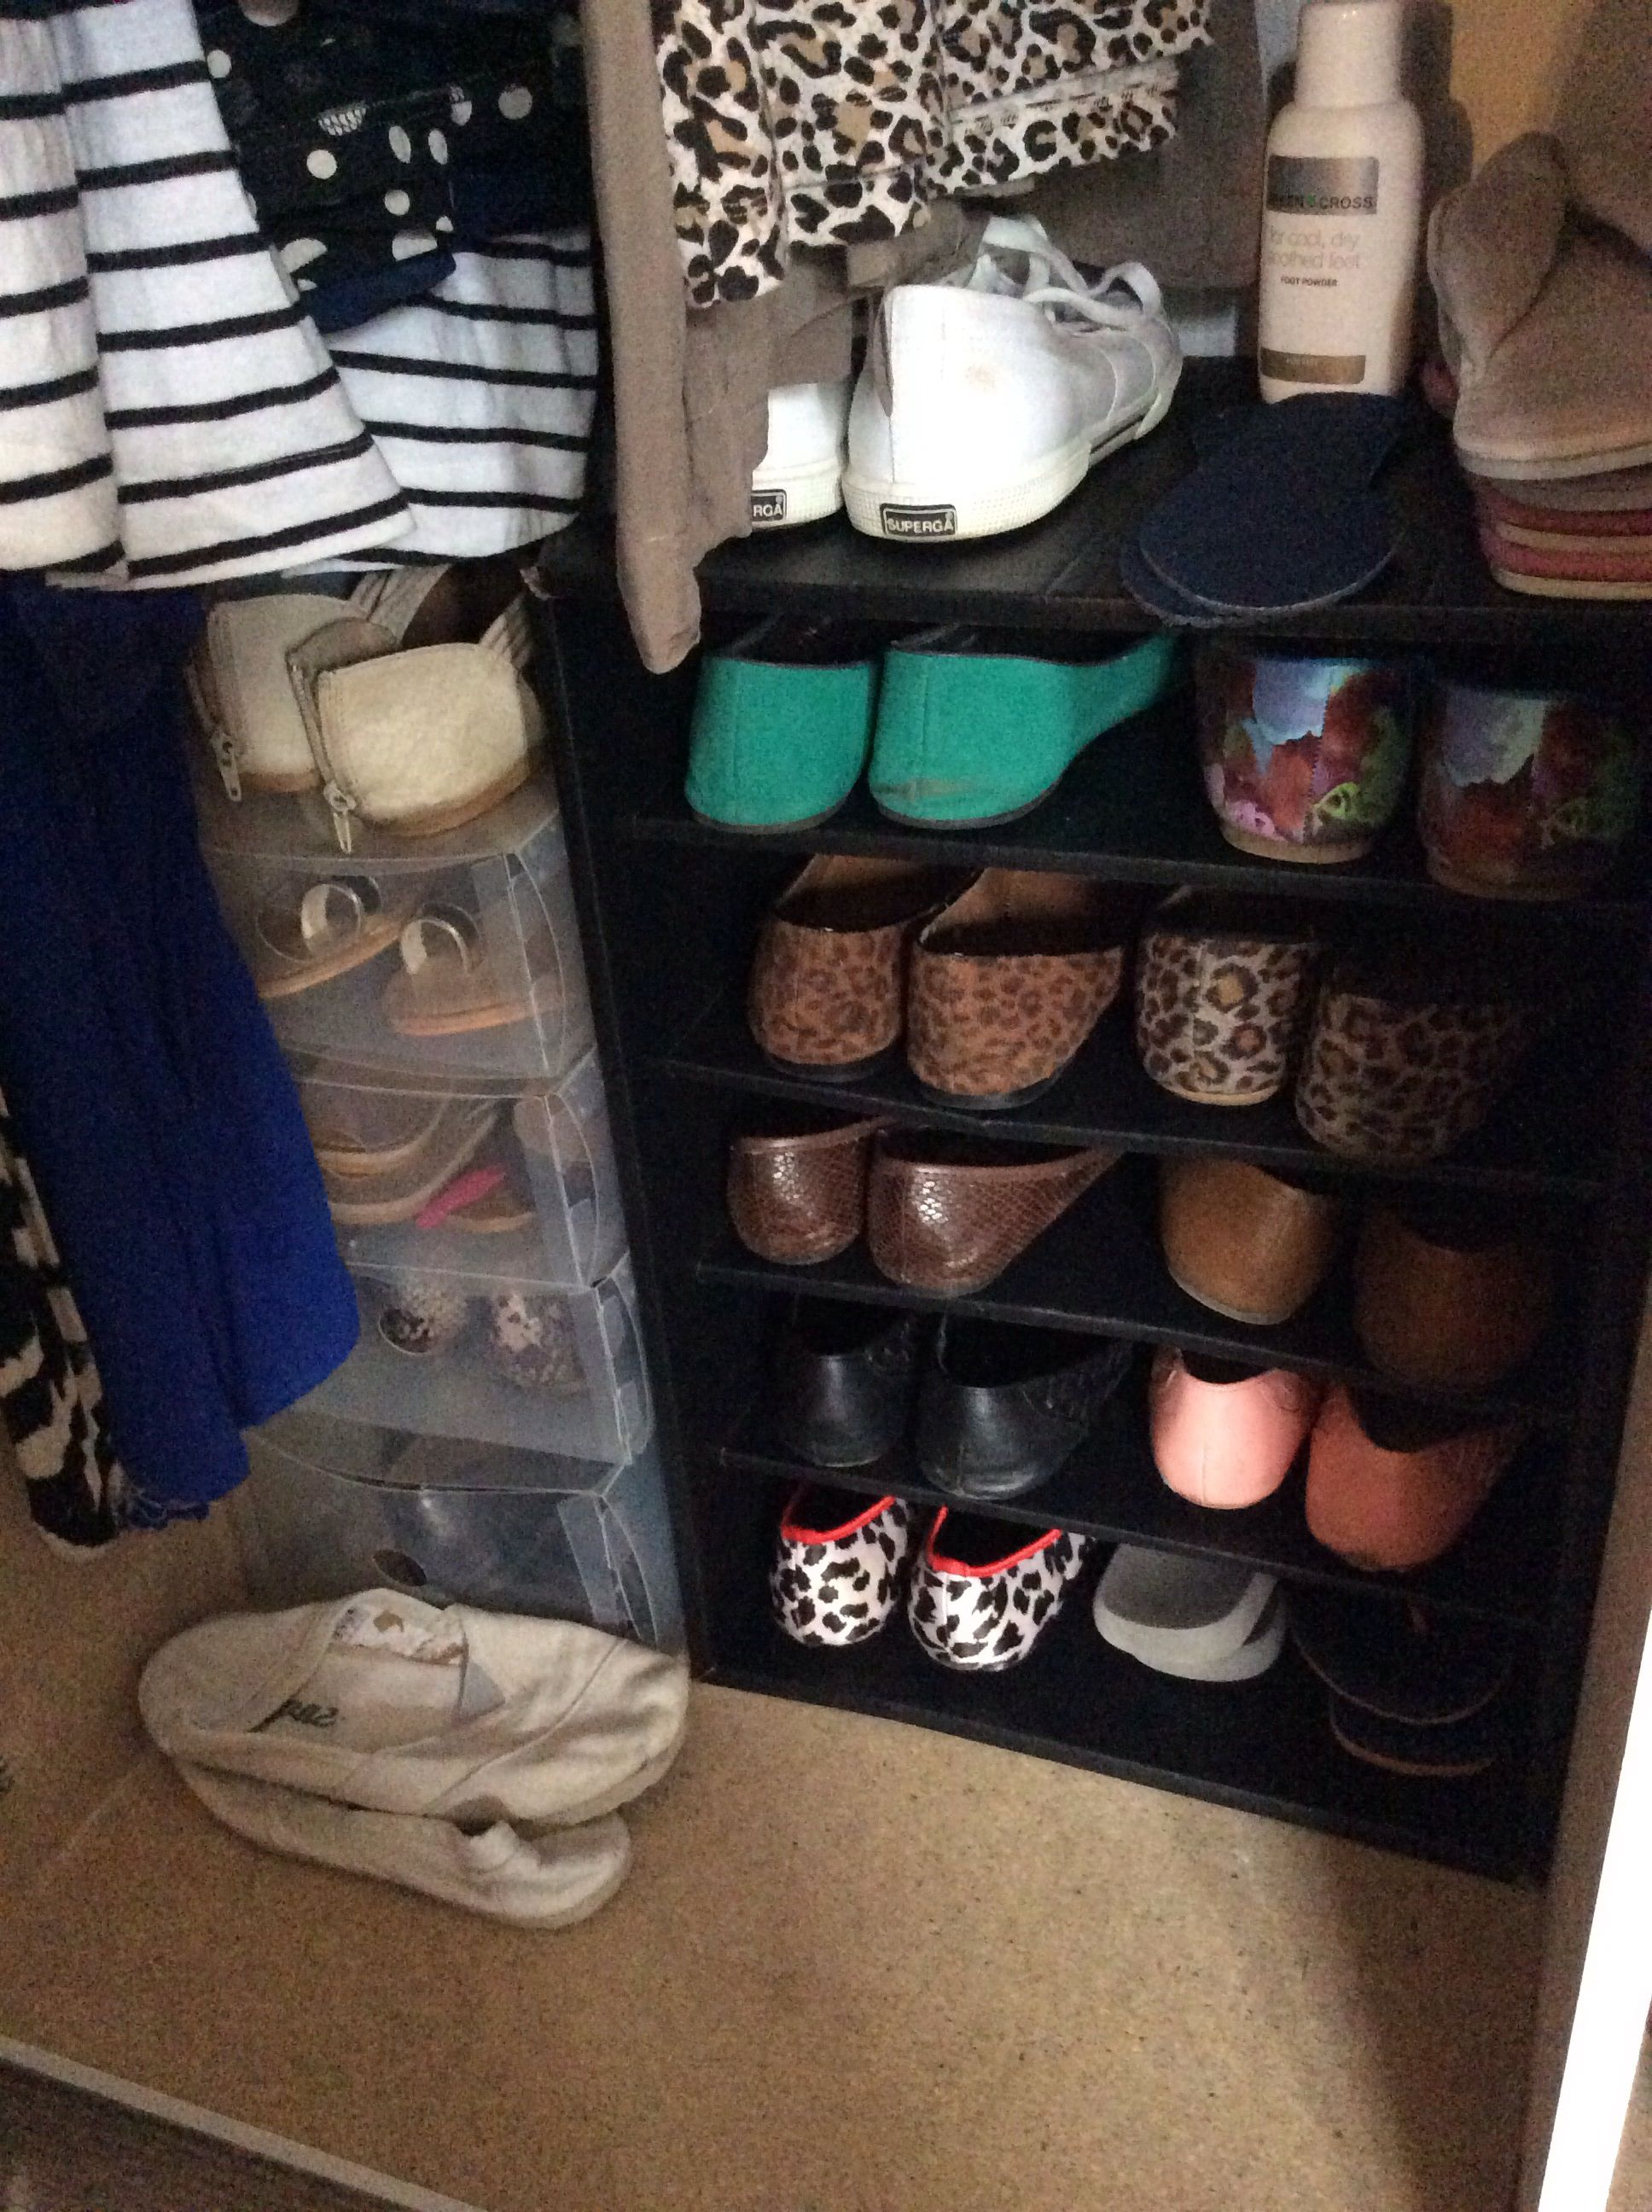 Use a Filing Box as Shoe storage!